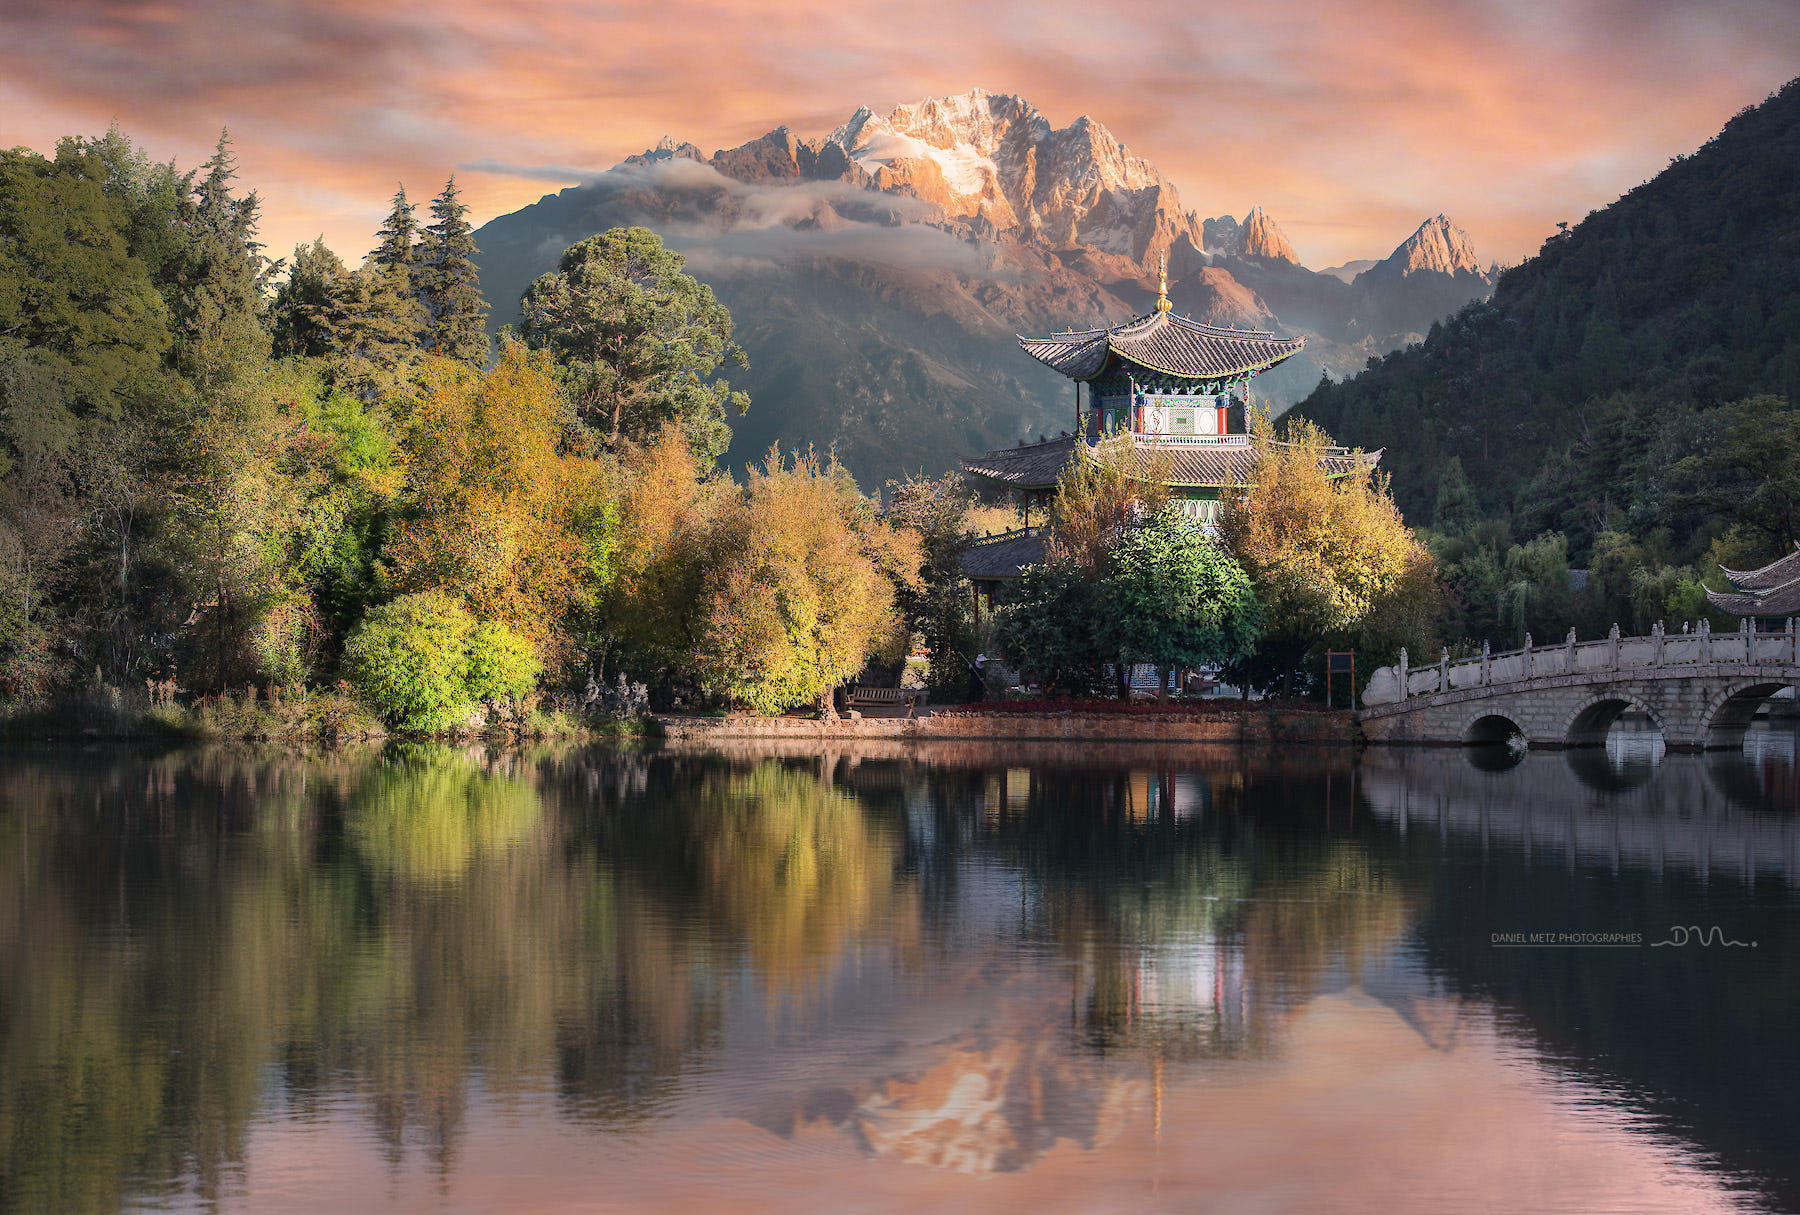 view from Lijiang